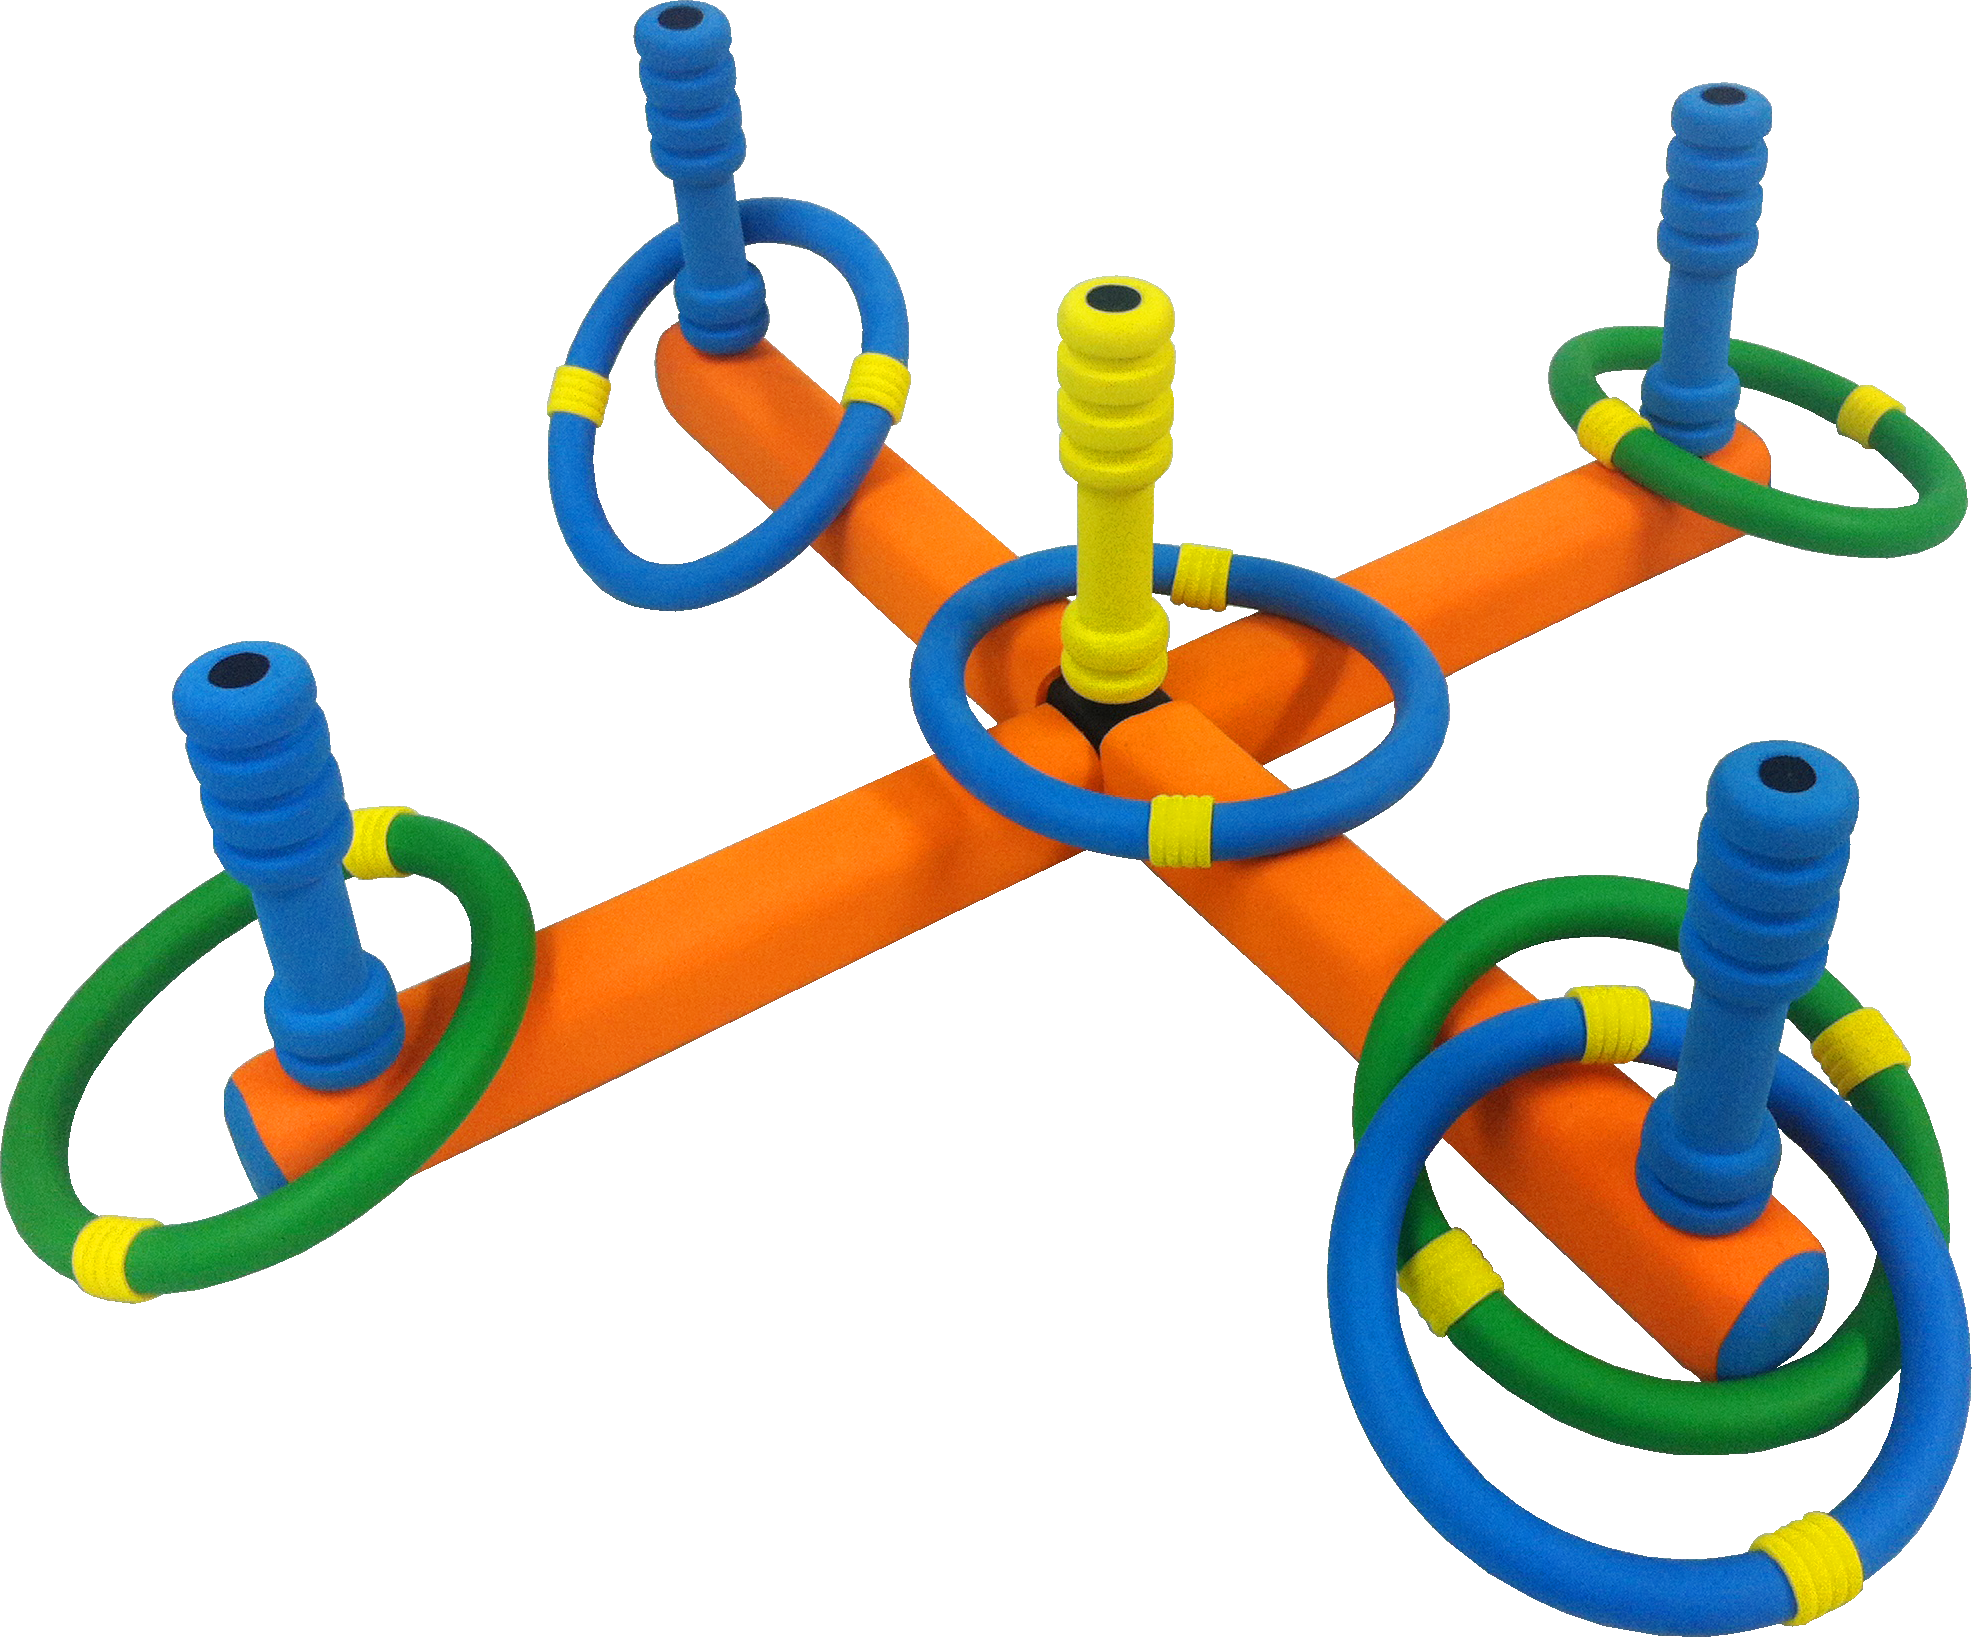 Ring toss png. Safsof multi the discovery